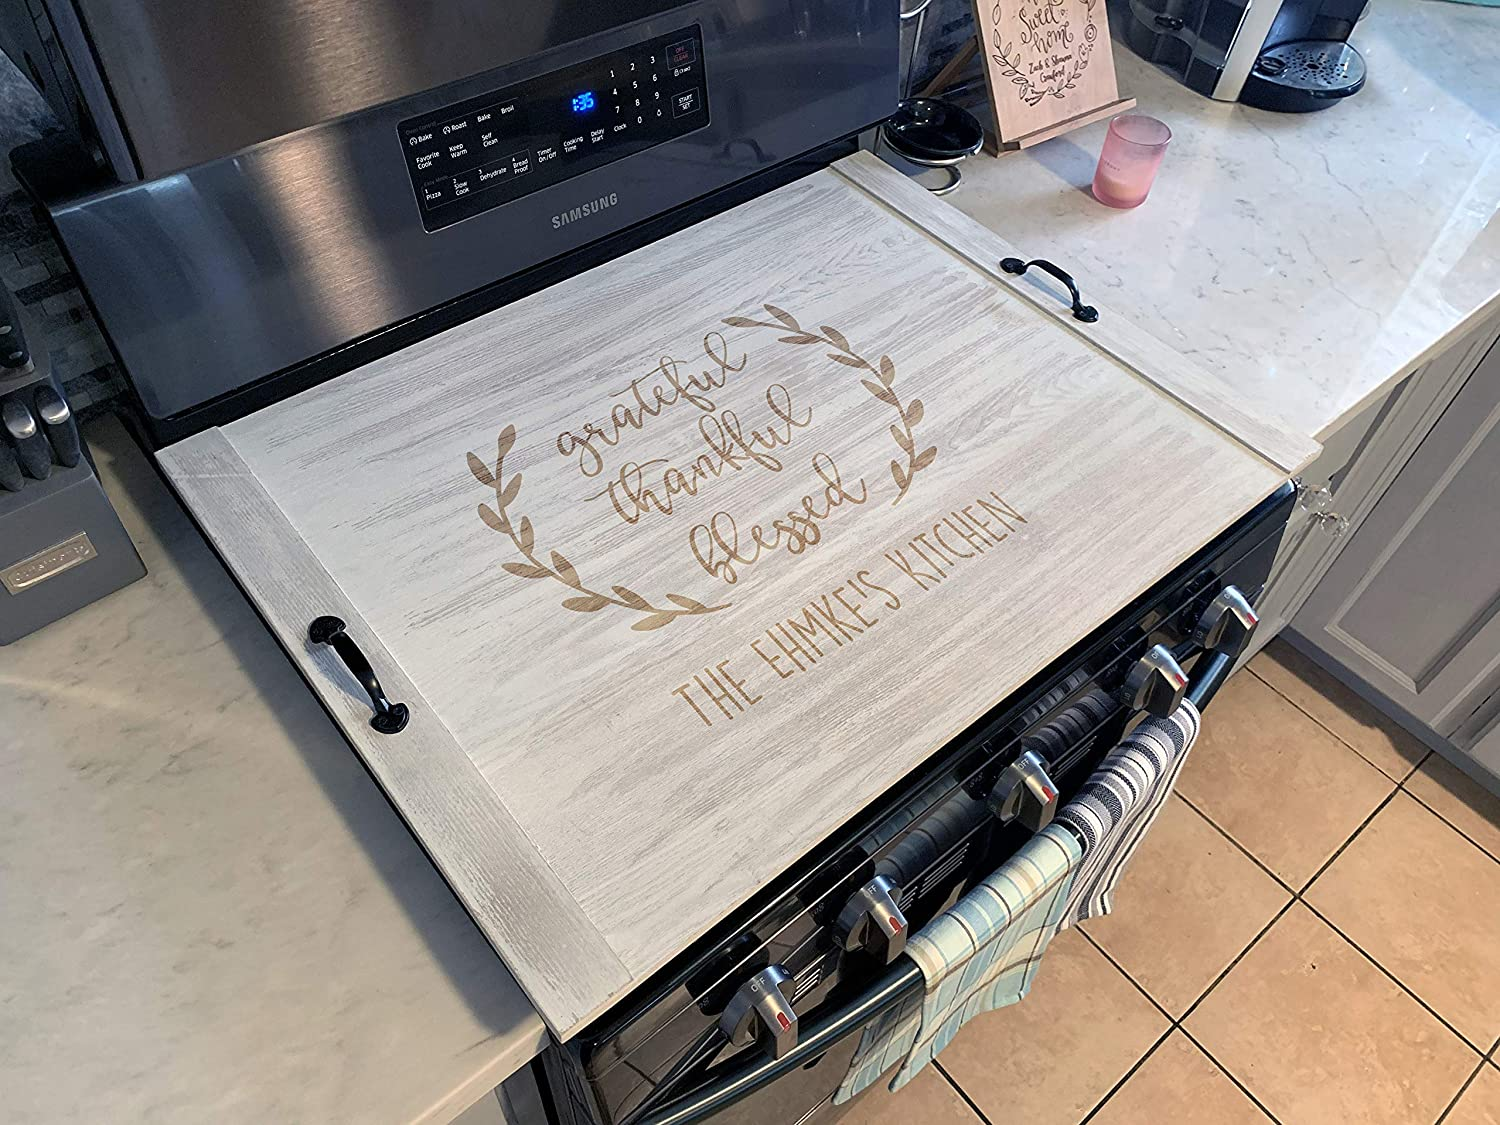 Grateful Thankful Blessed Home Decor Personalized Stove Top Cover Noodle Board 21205-TRAY-052